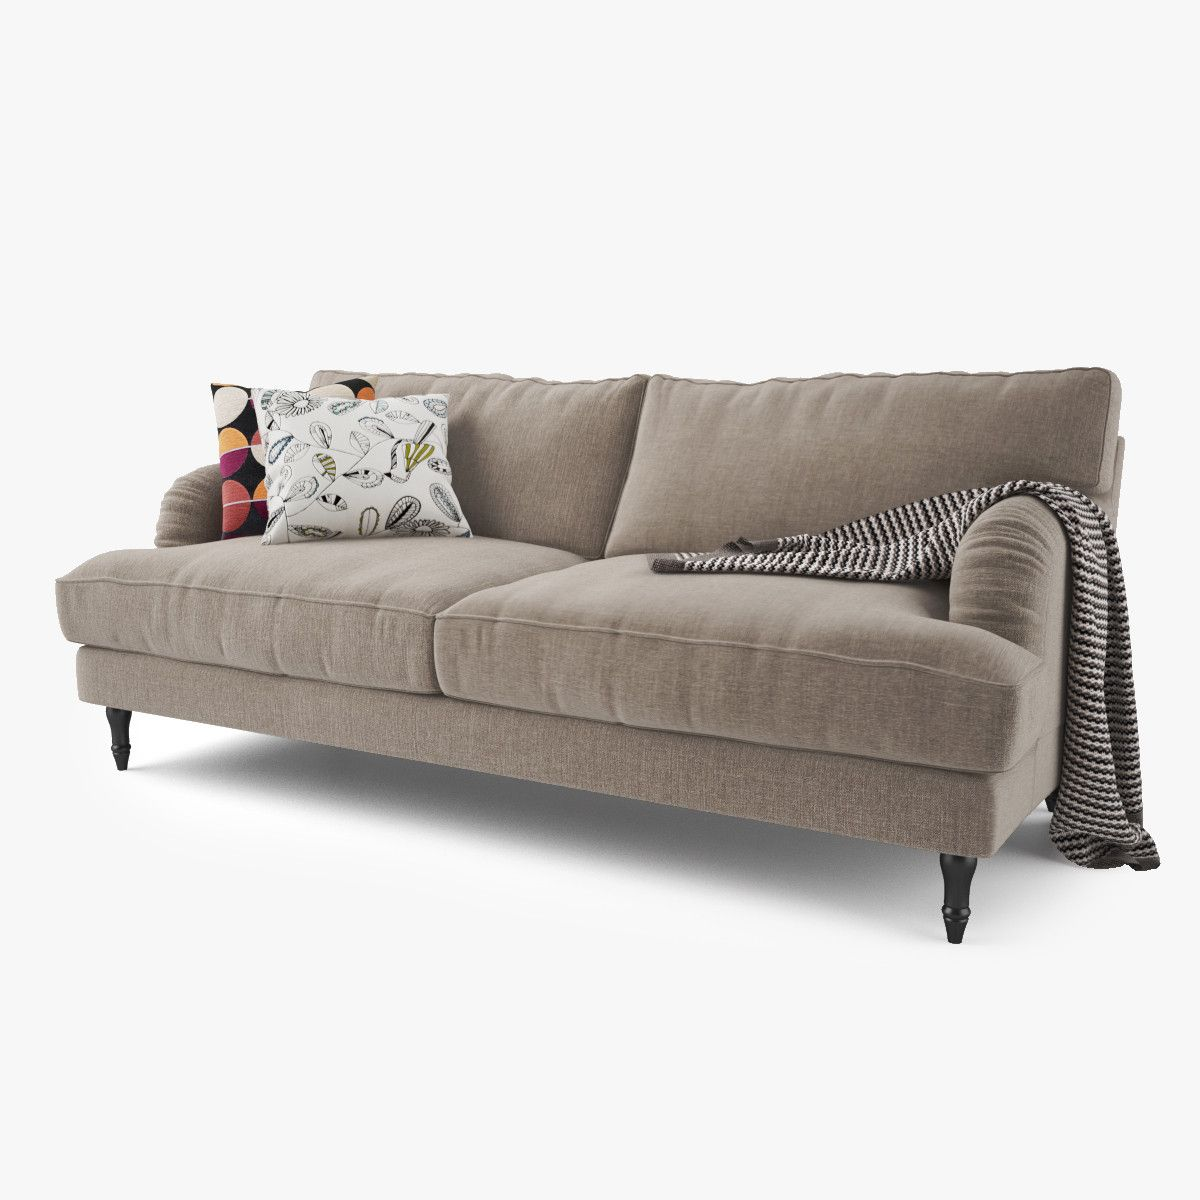 Stocksund Sofa Google Search Cozy Family Room Ikea